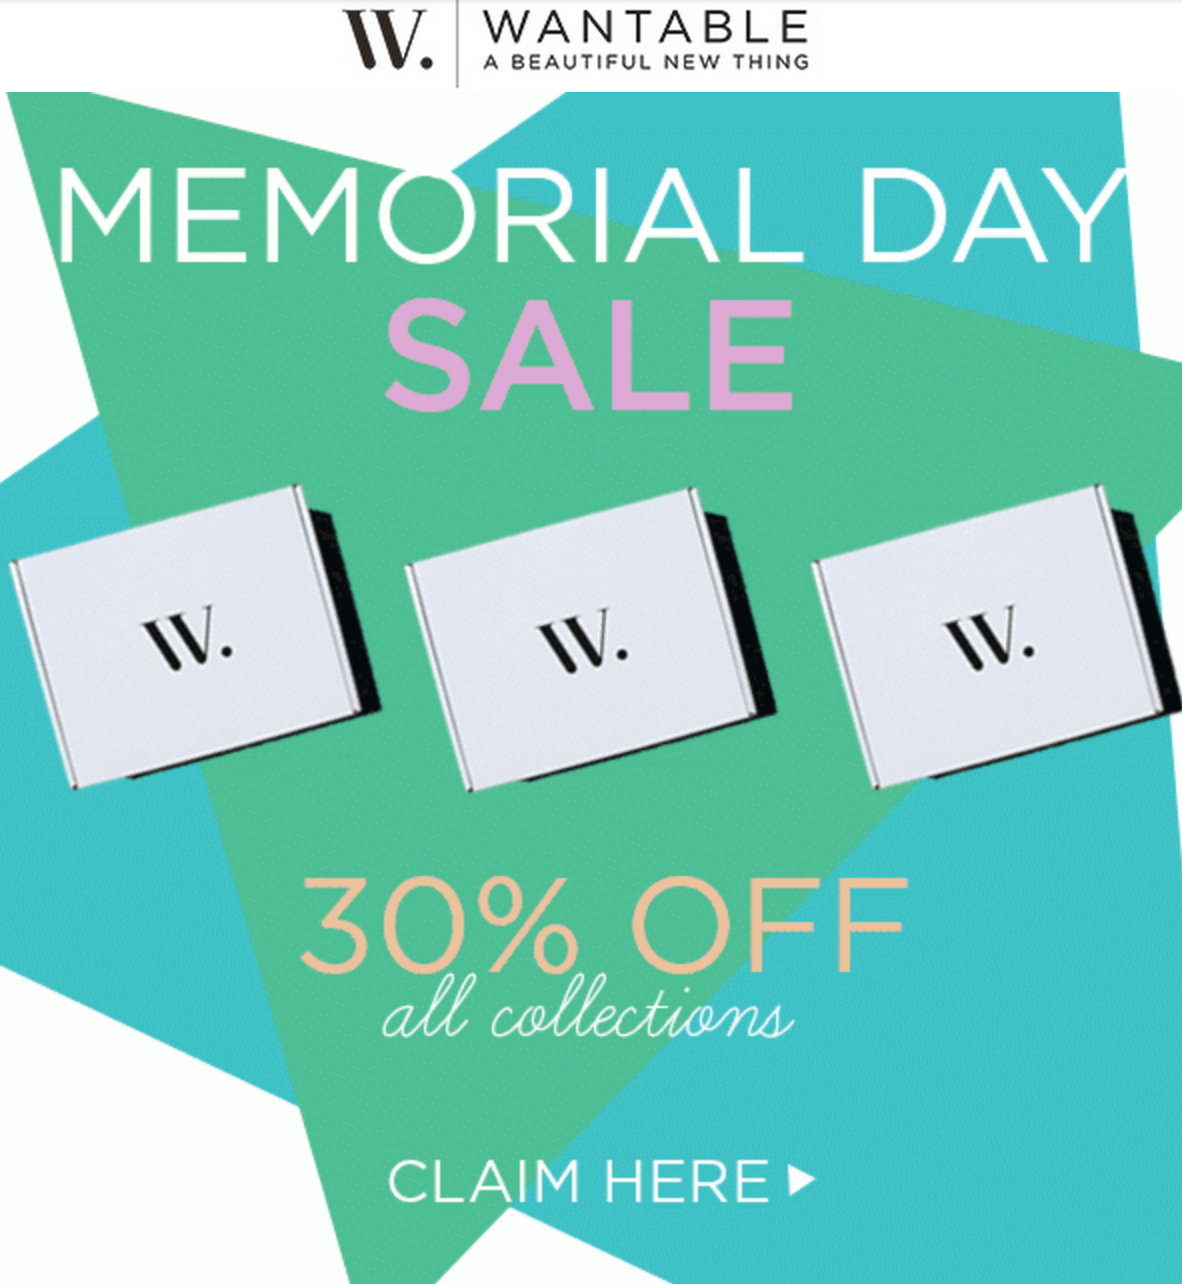 Wantable Memorial Day Sale!